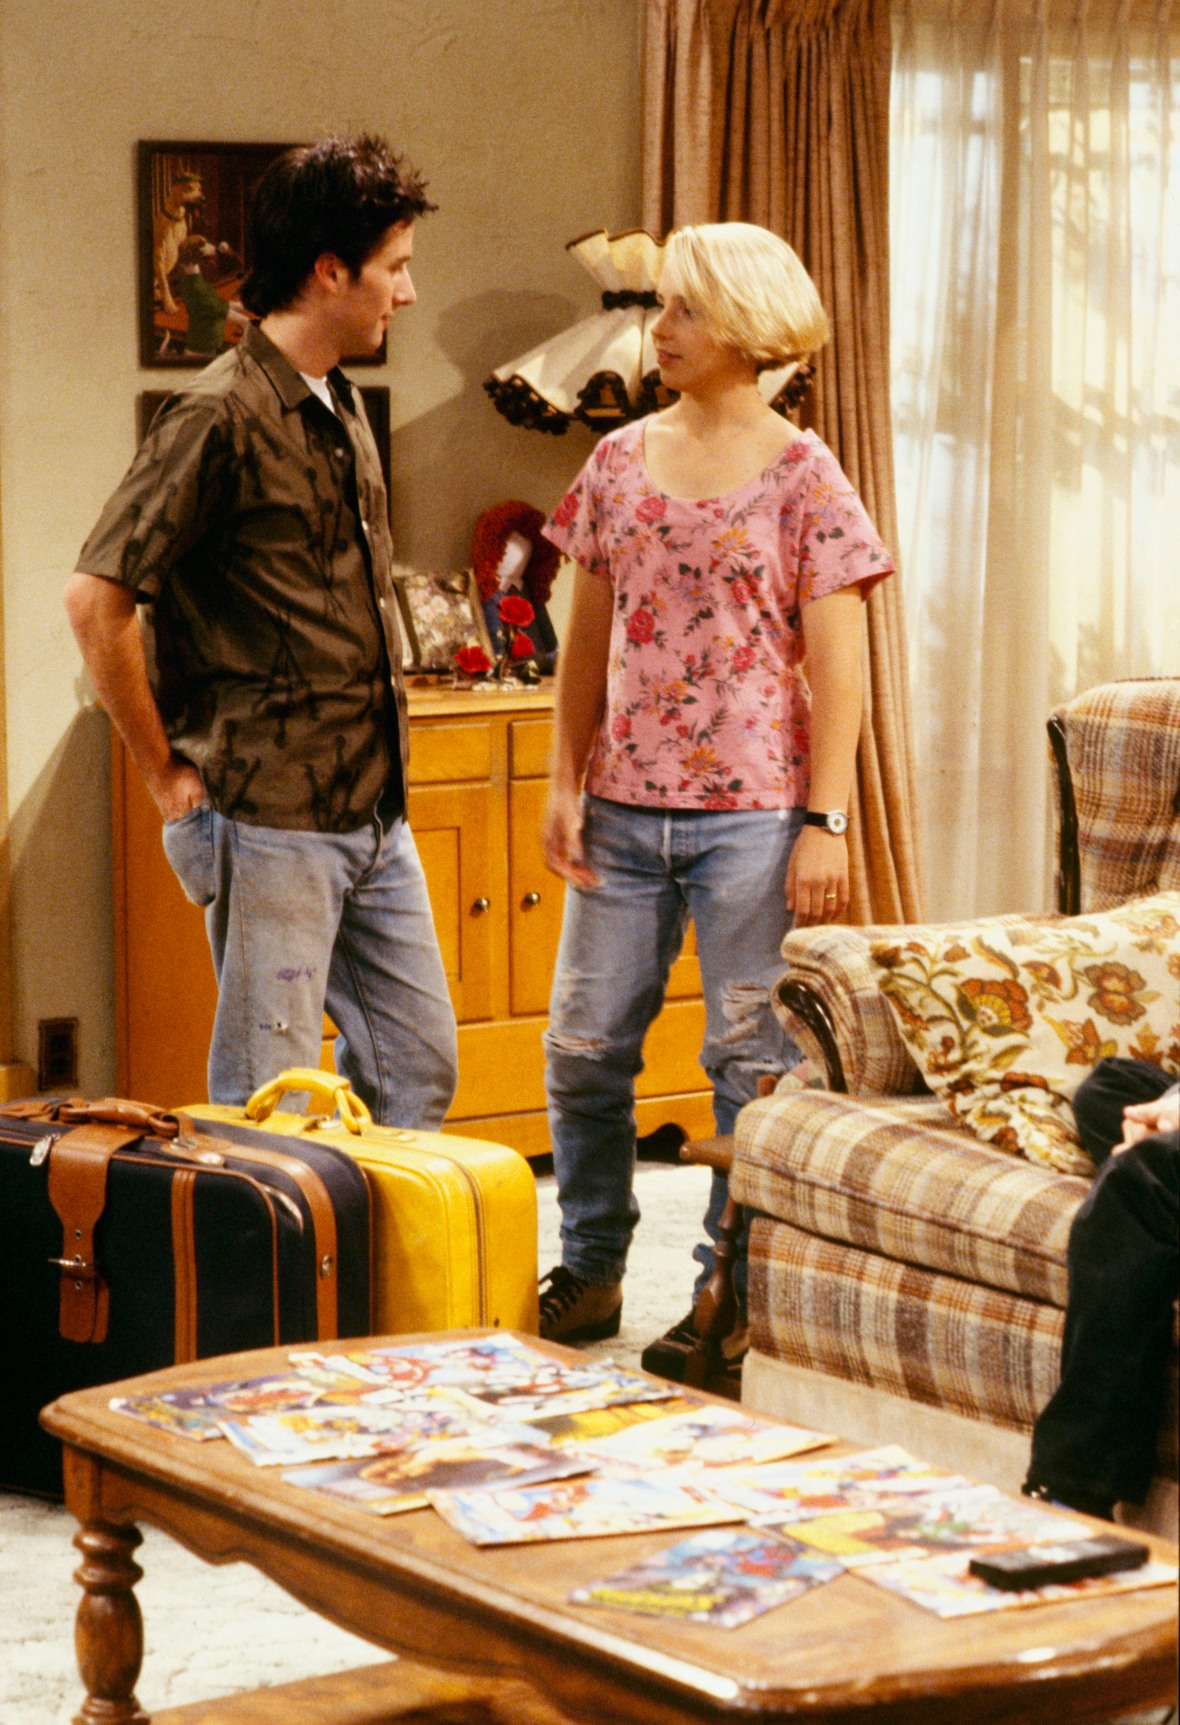 becky conner mark healy roseanne getty images